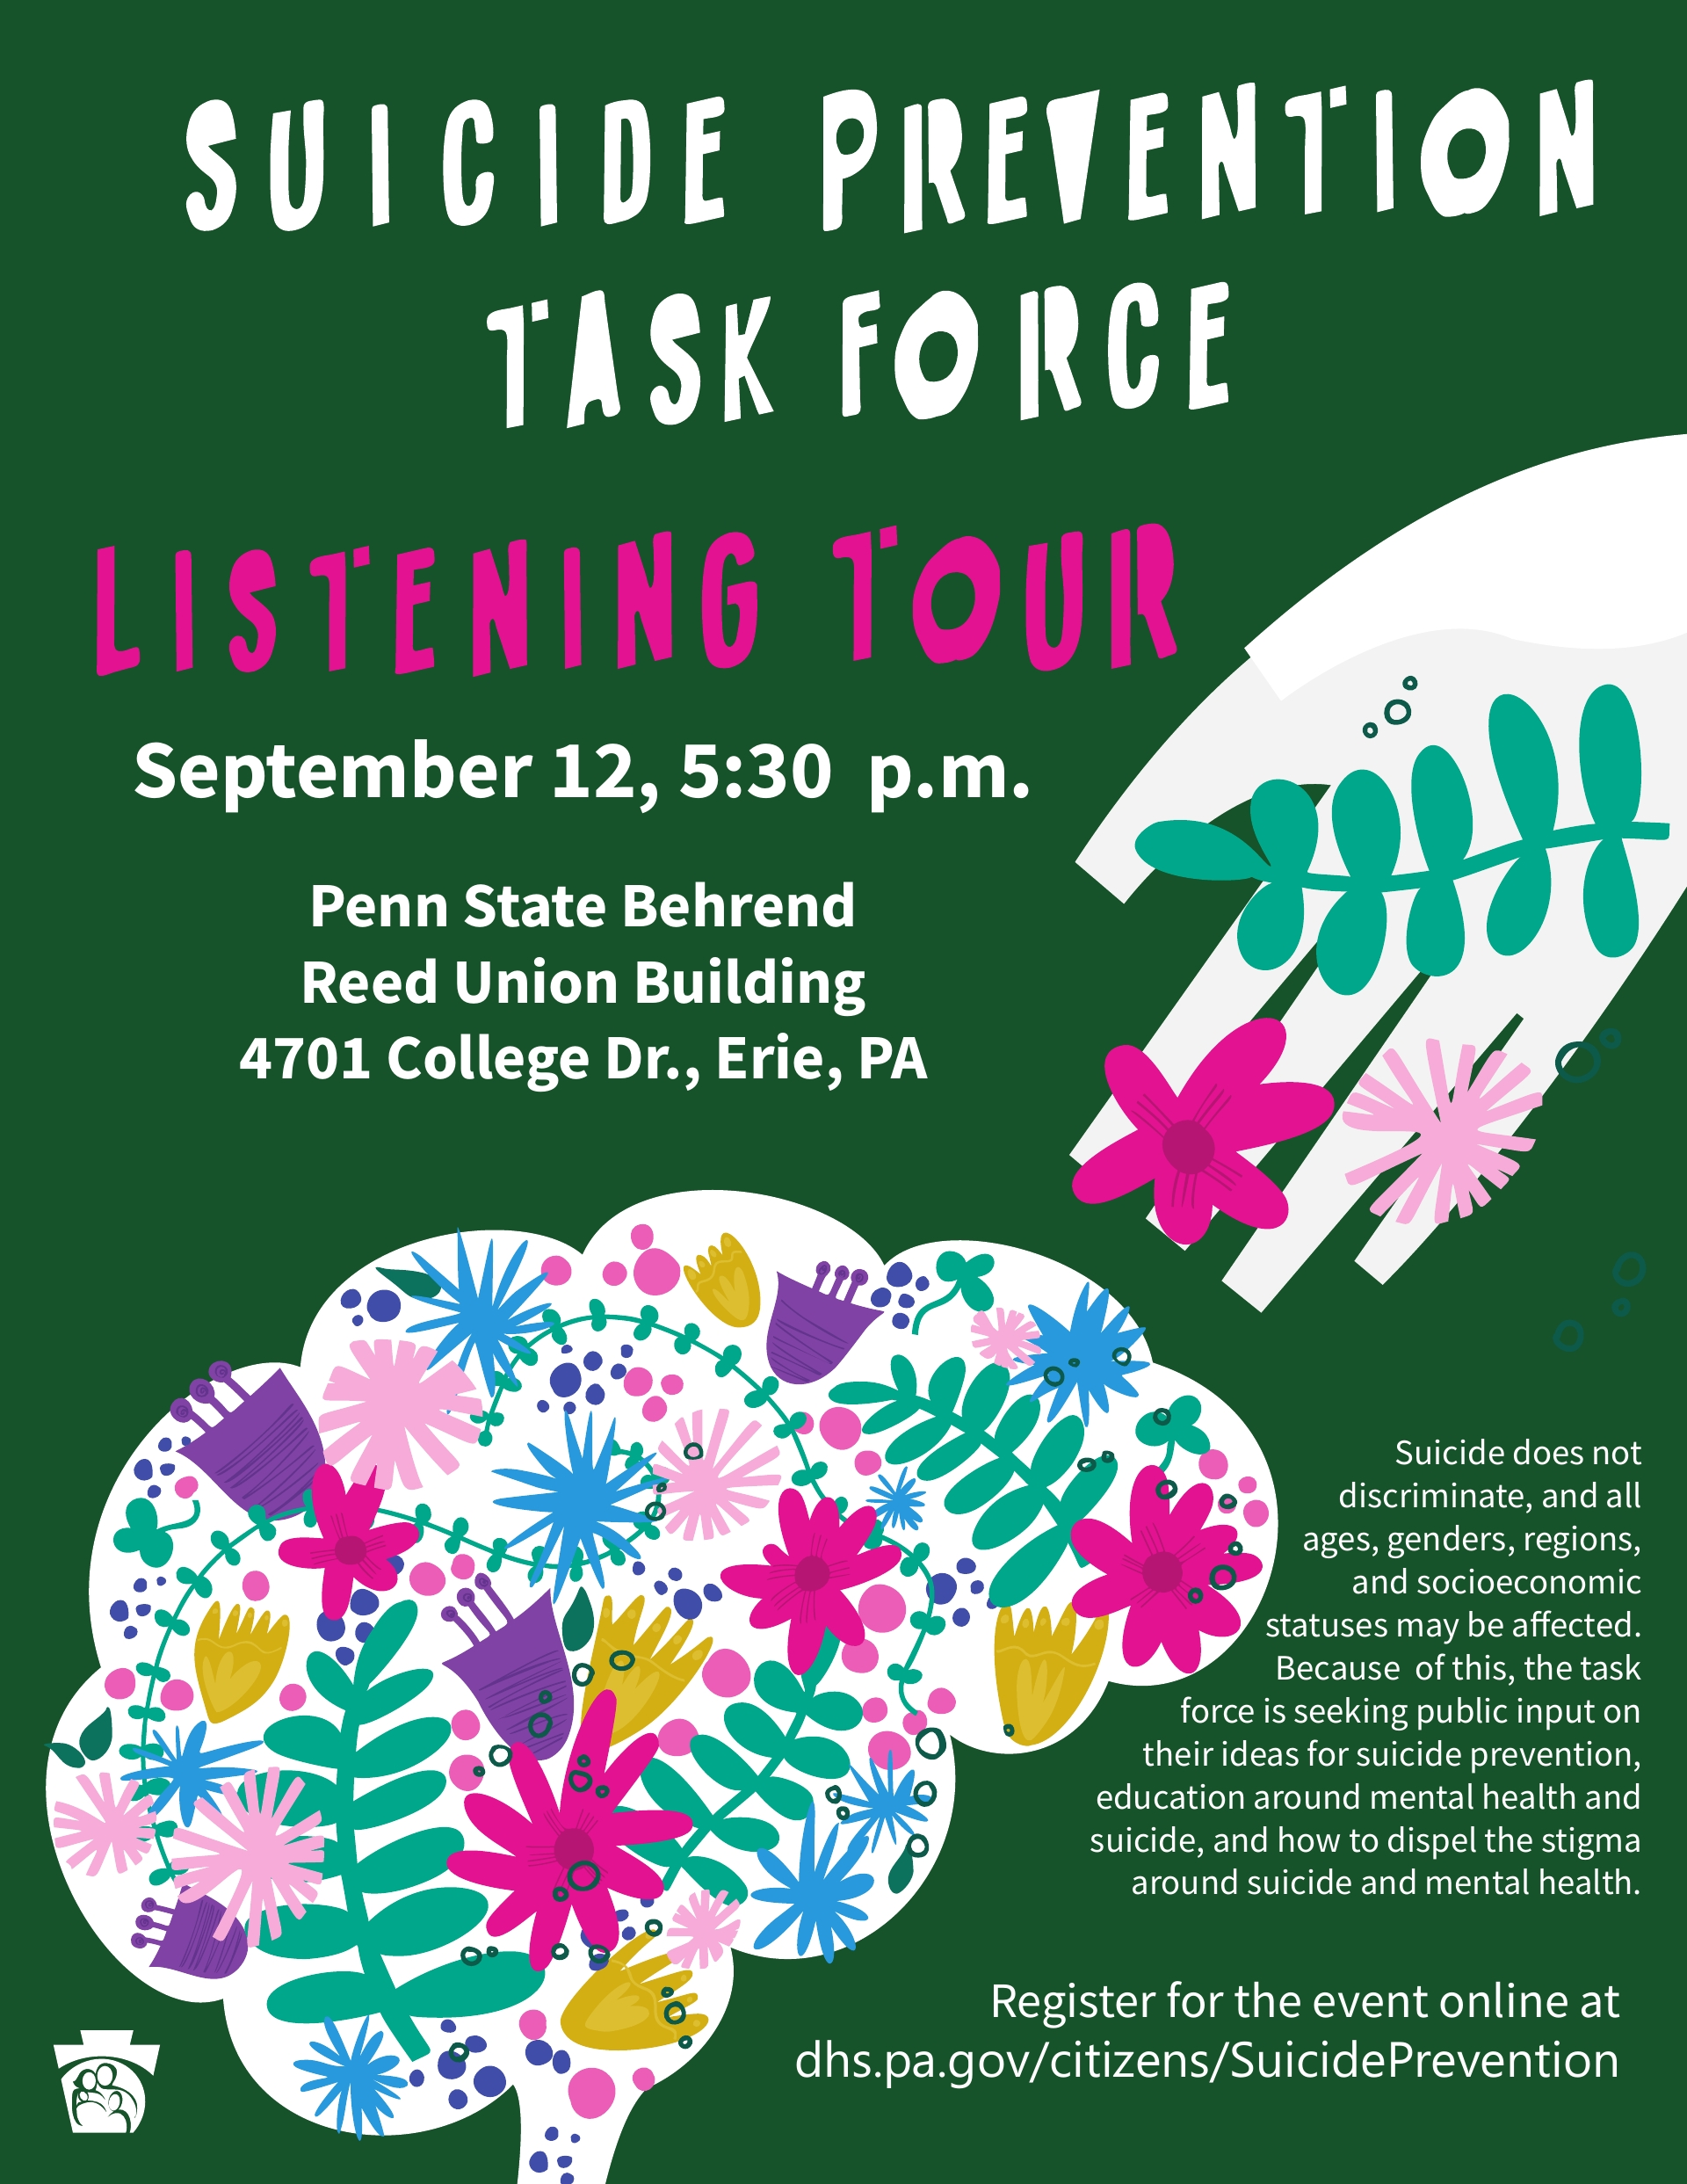 SUICIDE TASK FORCE LISTENING TOUR Erie, Phil.,York, Luzerne, Lehigh, Allegheny, Butler, SE PA